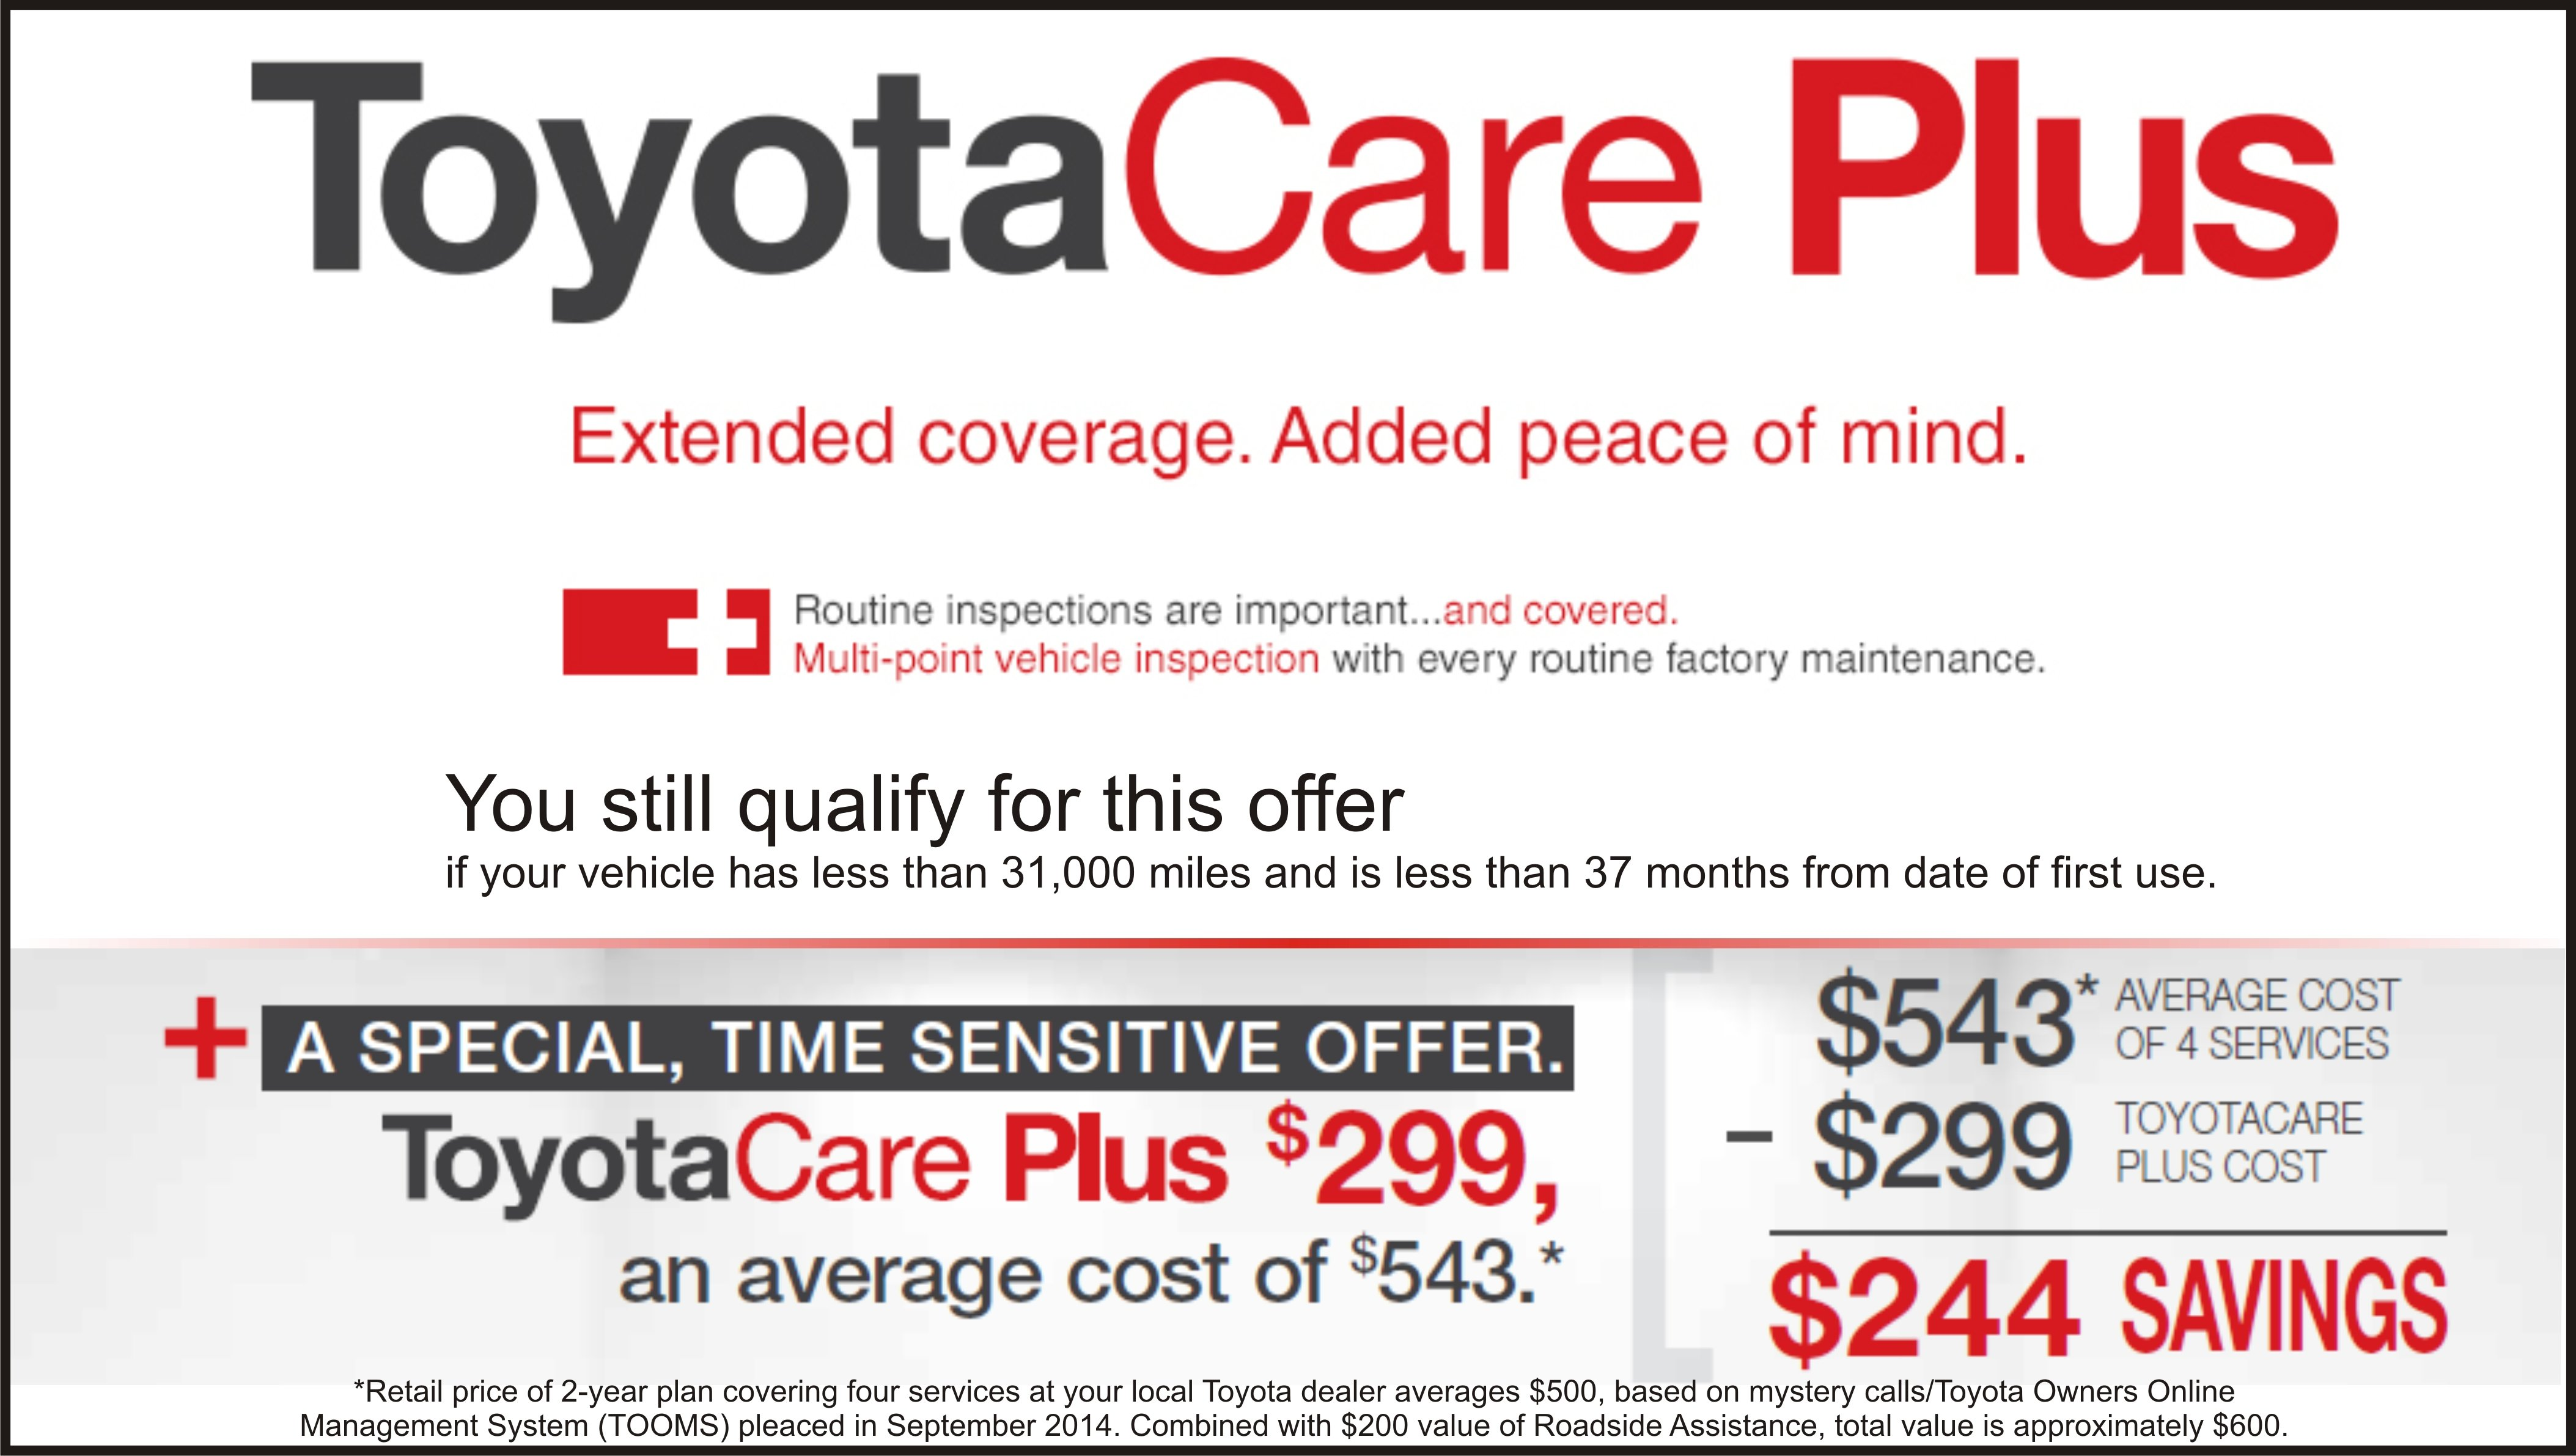 Buy ToyotaCare for $299 and save an average of $244!  Prepay for your Toyota service and keep your ToyotaCare going!